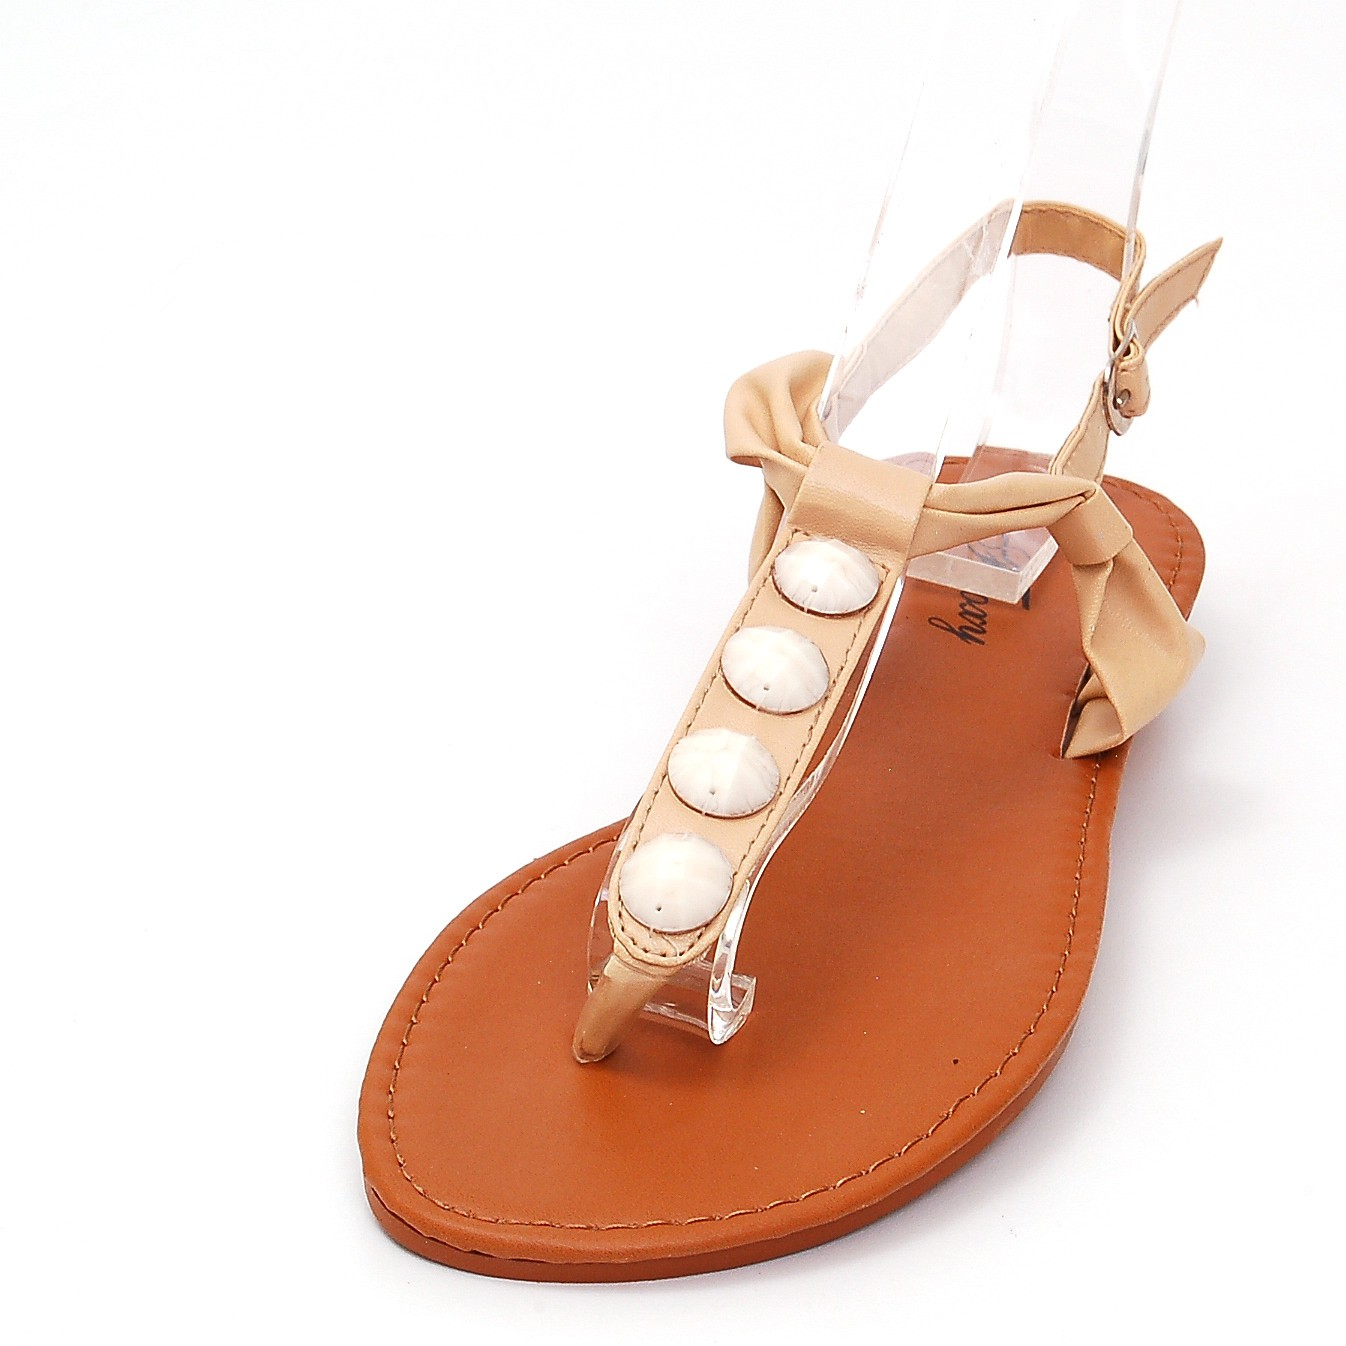 Amazing Clothing Shoes Amp Accessories Gt Women39s Shoes Gt Sandals Amp F